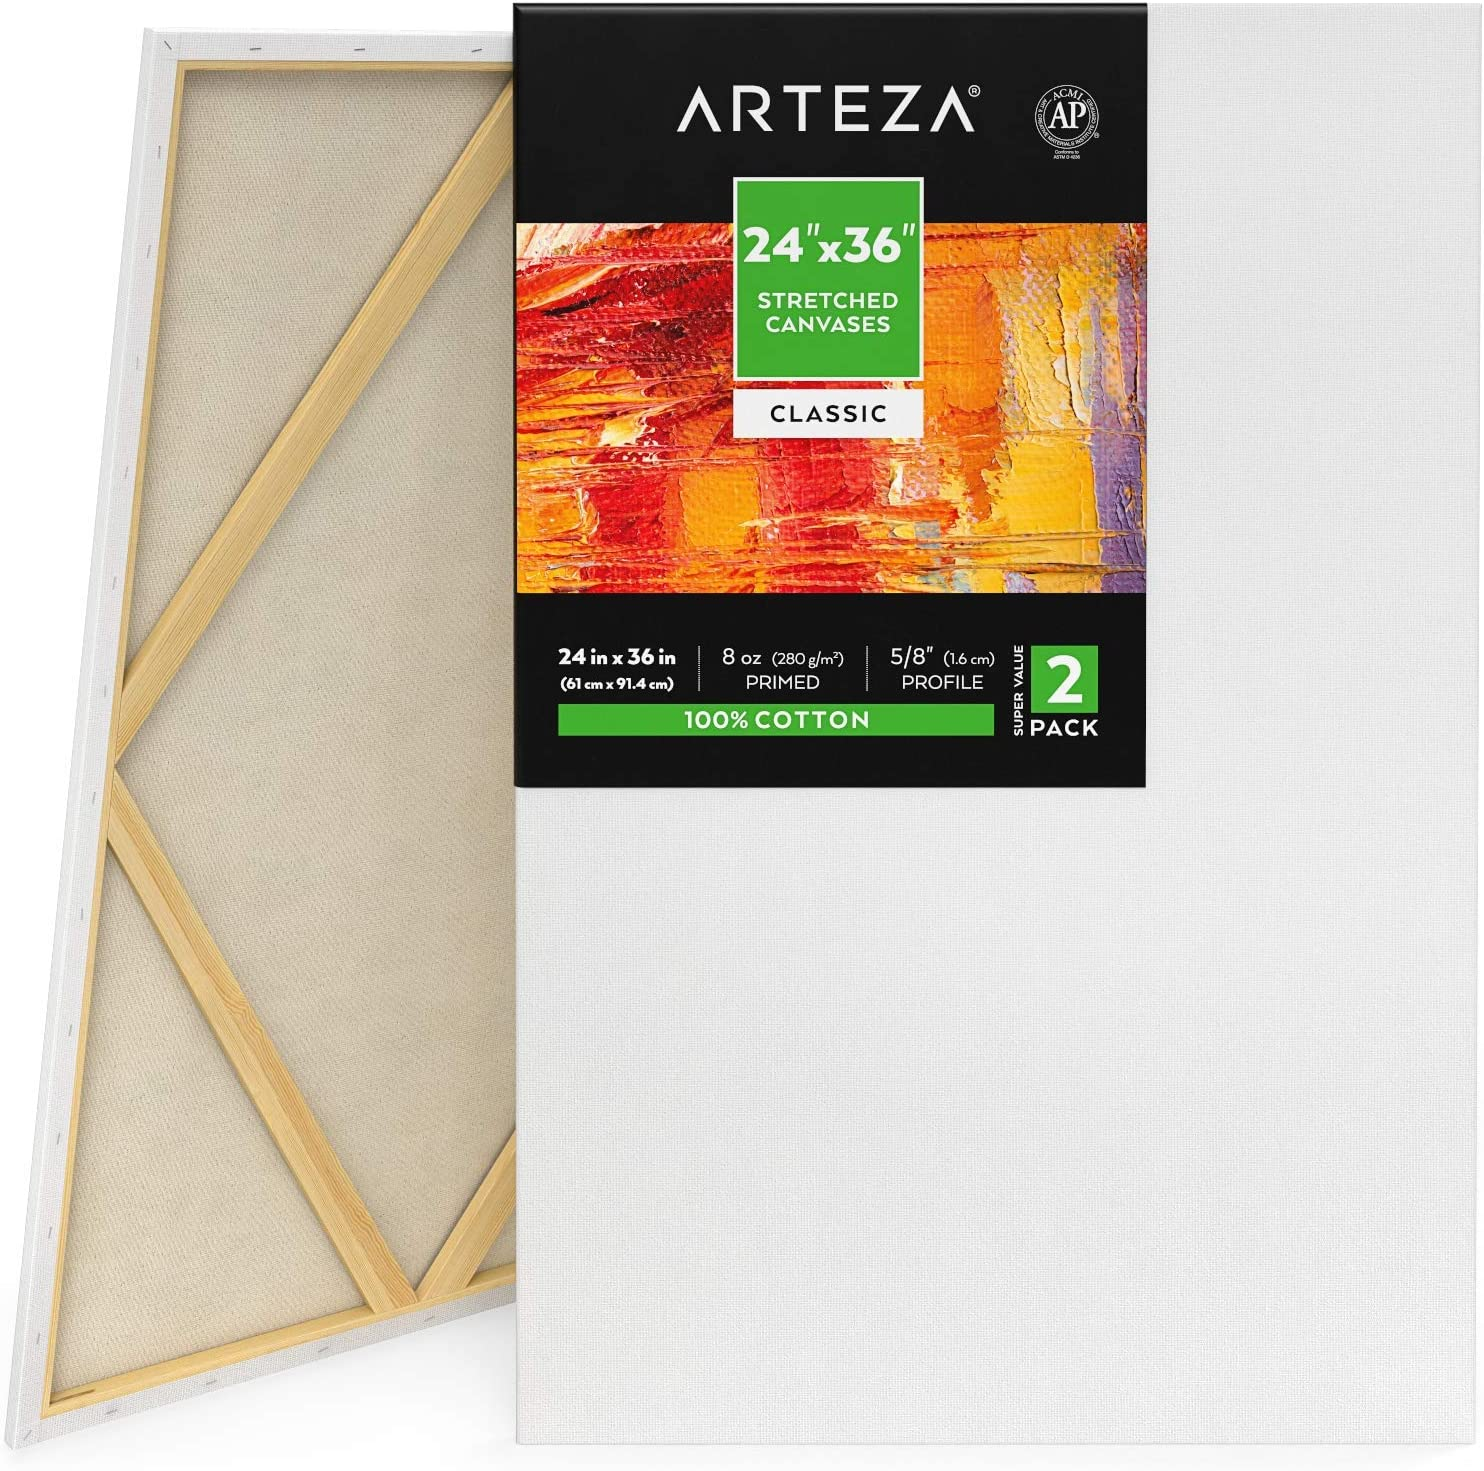 """Arteza 24x36"""" Stretched White Blank Canvas, Bulk Pack of 2, Primed, 100% Cotton for Painting, Acrylic Pouring, Oil Paint & Wet Art Media, Canvases for Professional Artist, Hobby Painters & Beginner"""